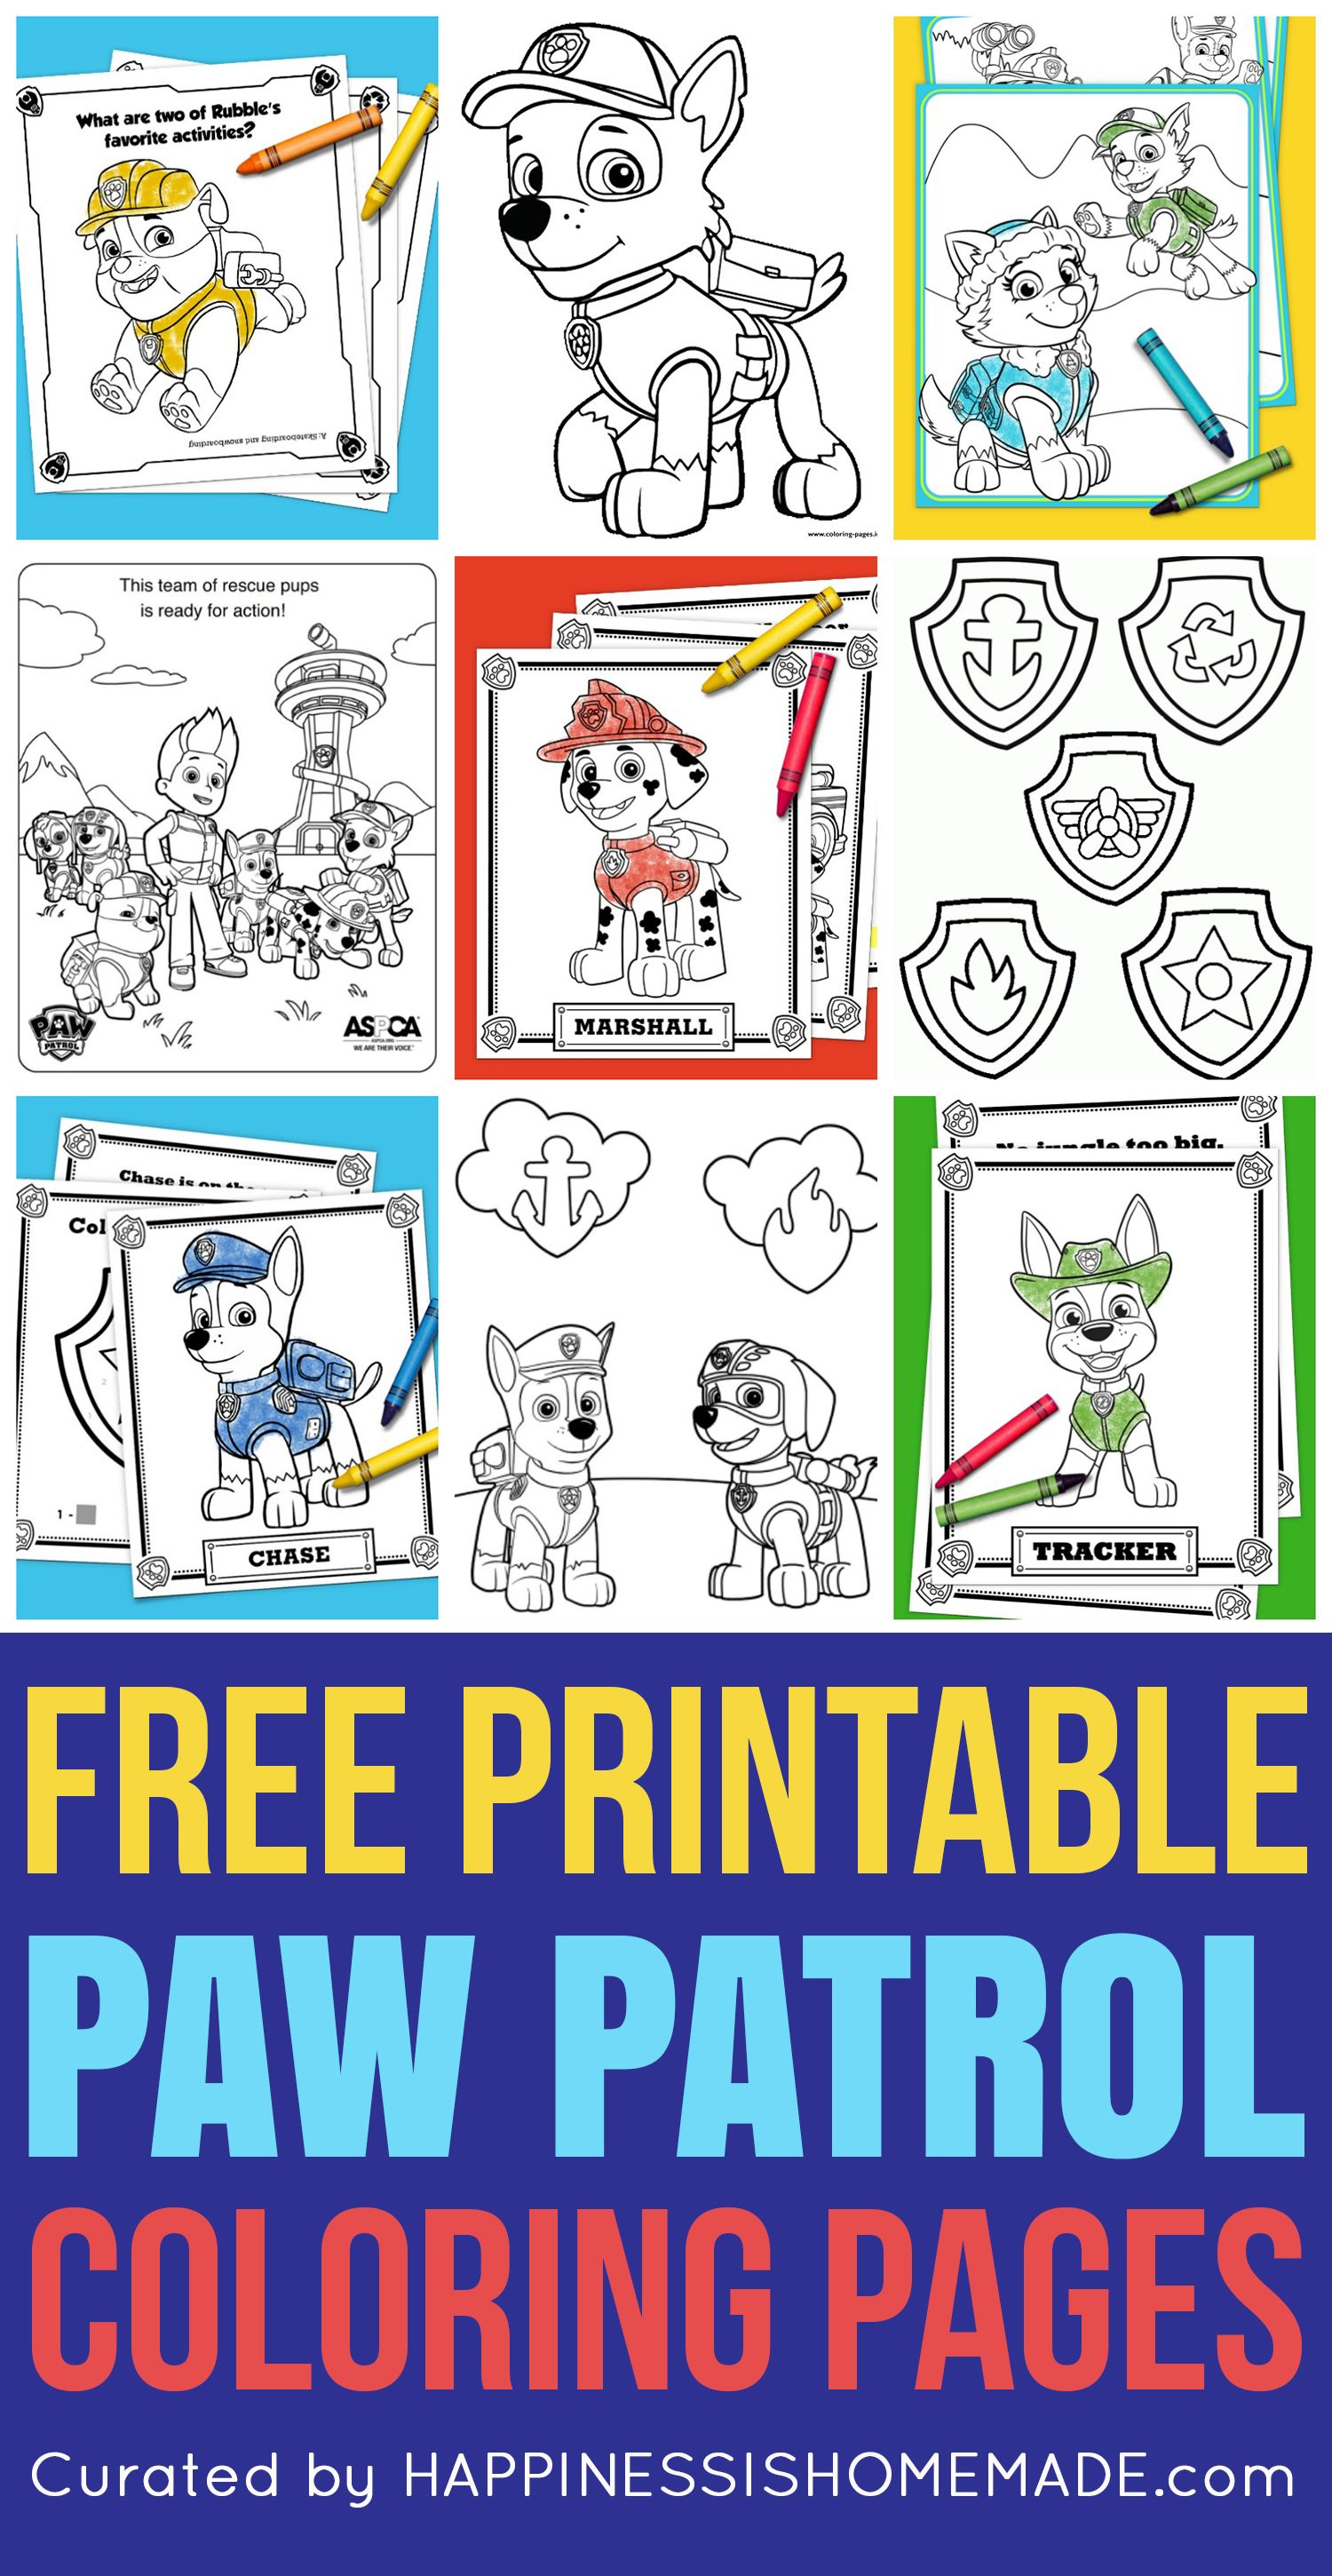 free printable paw patrol coloring pages are fun for kids of all ages love paw